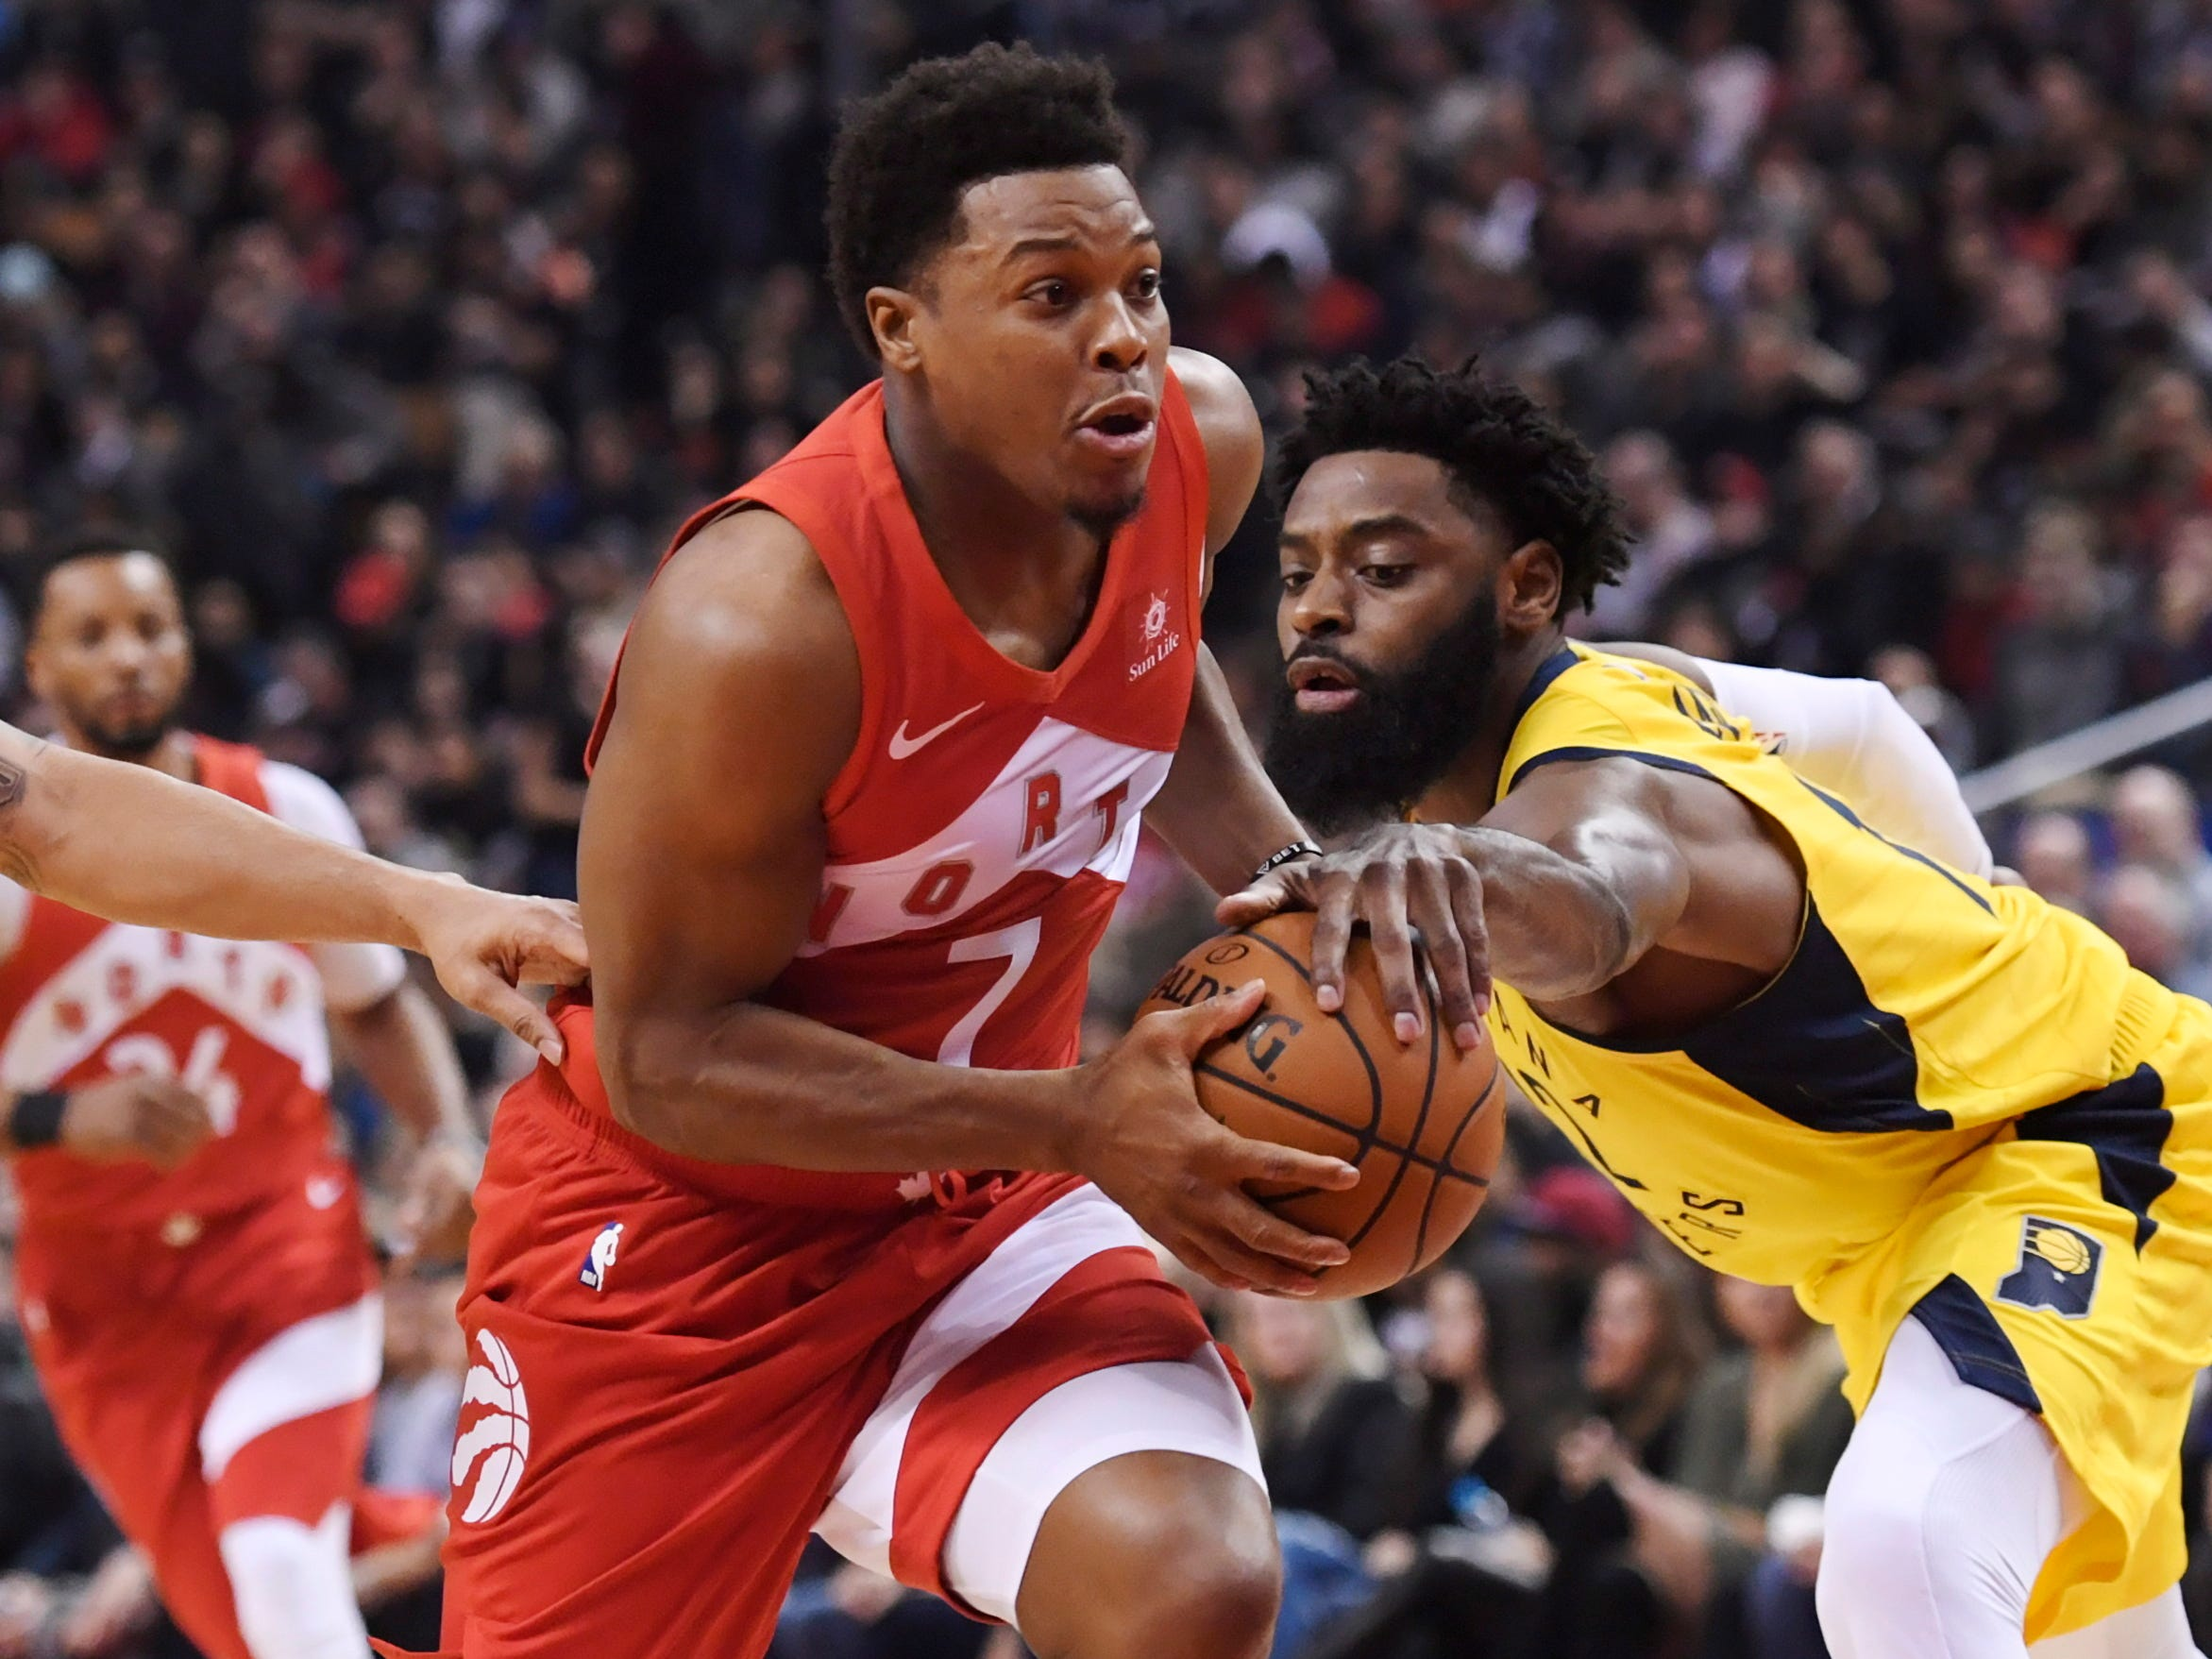 Toronto Raptors guard Kyle Lowry (7) drives past Indiana Pacers guard Tyreke Evans (12) during first half NBA basketball action in Toronto on Sunday, Jan. 6, 2019.